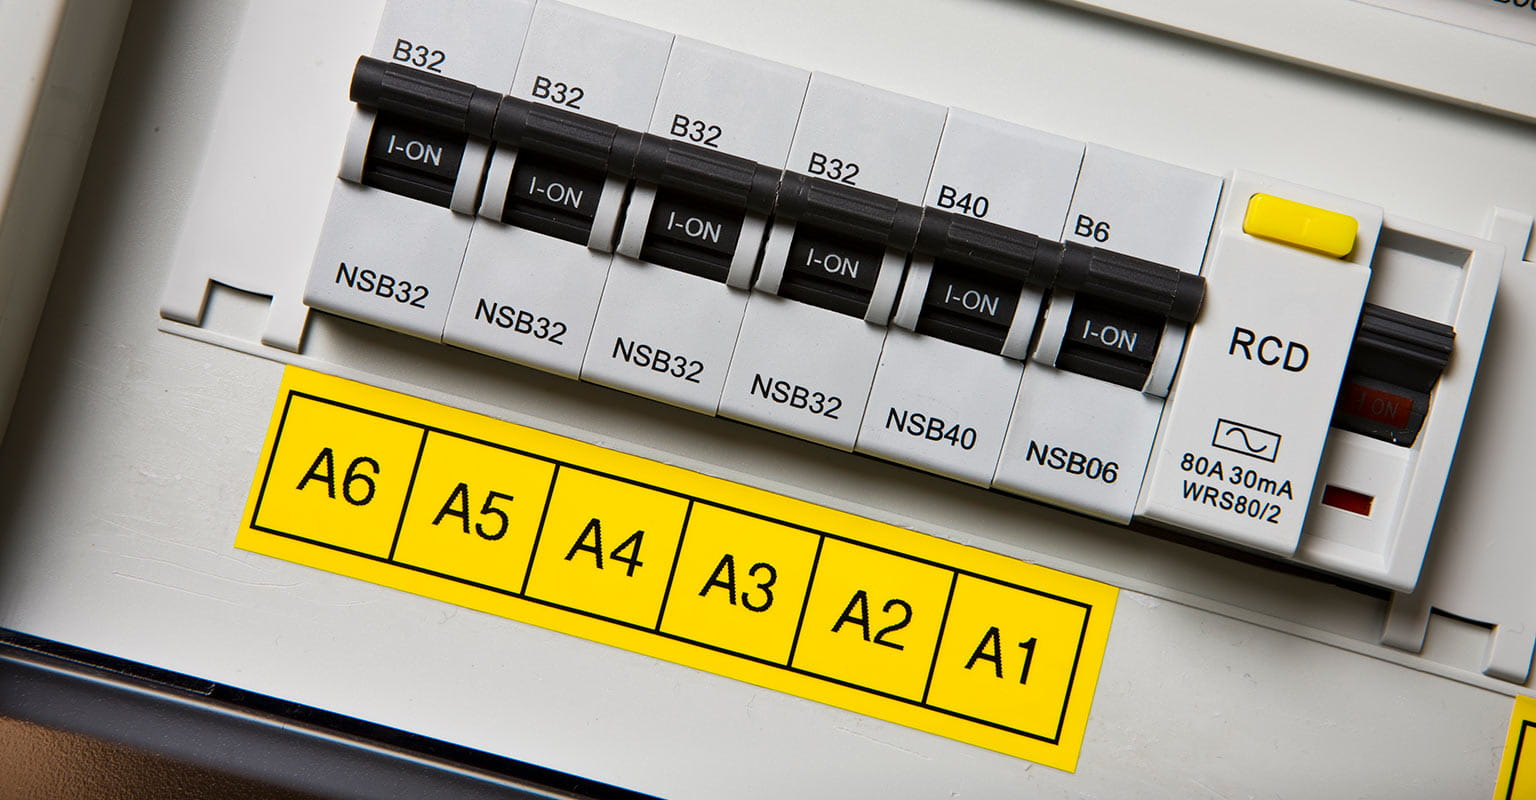 Consumer unit labelled with Brother black on yellow tape